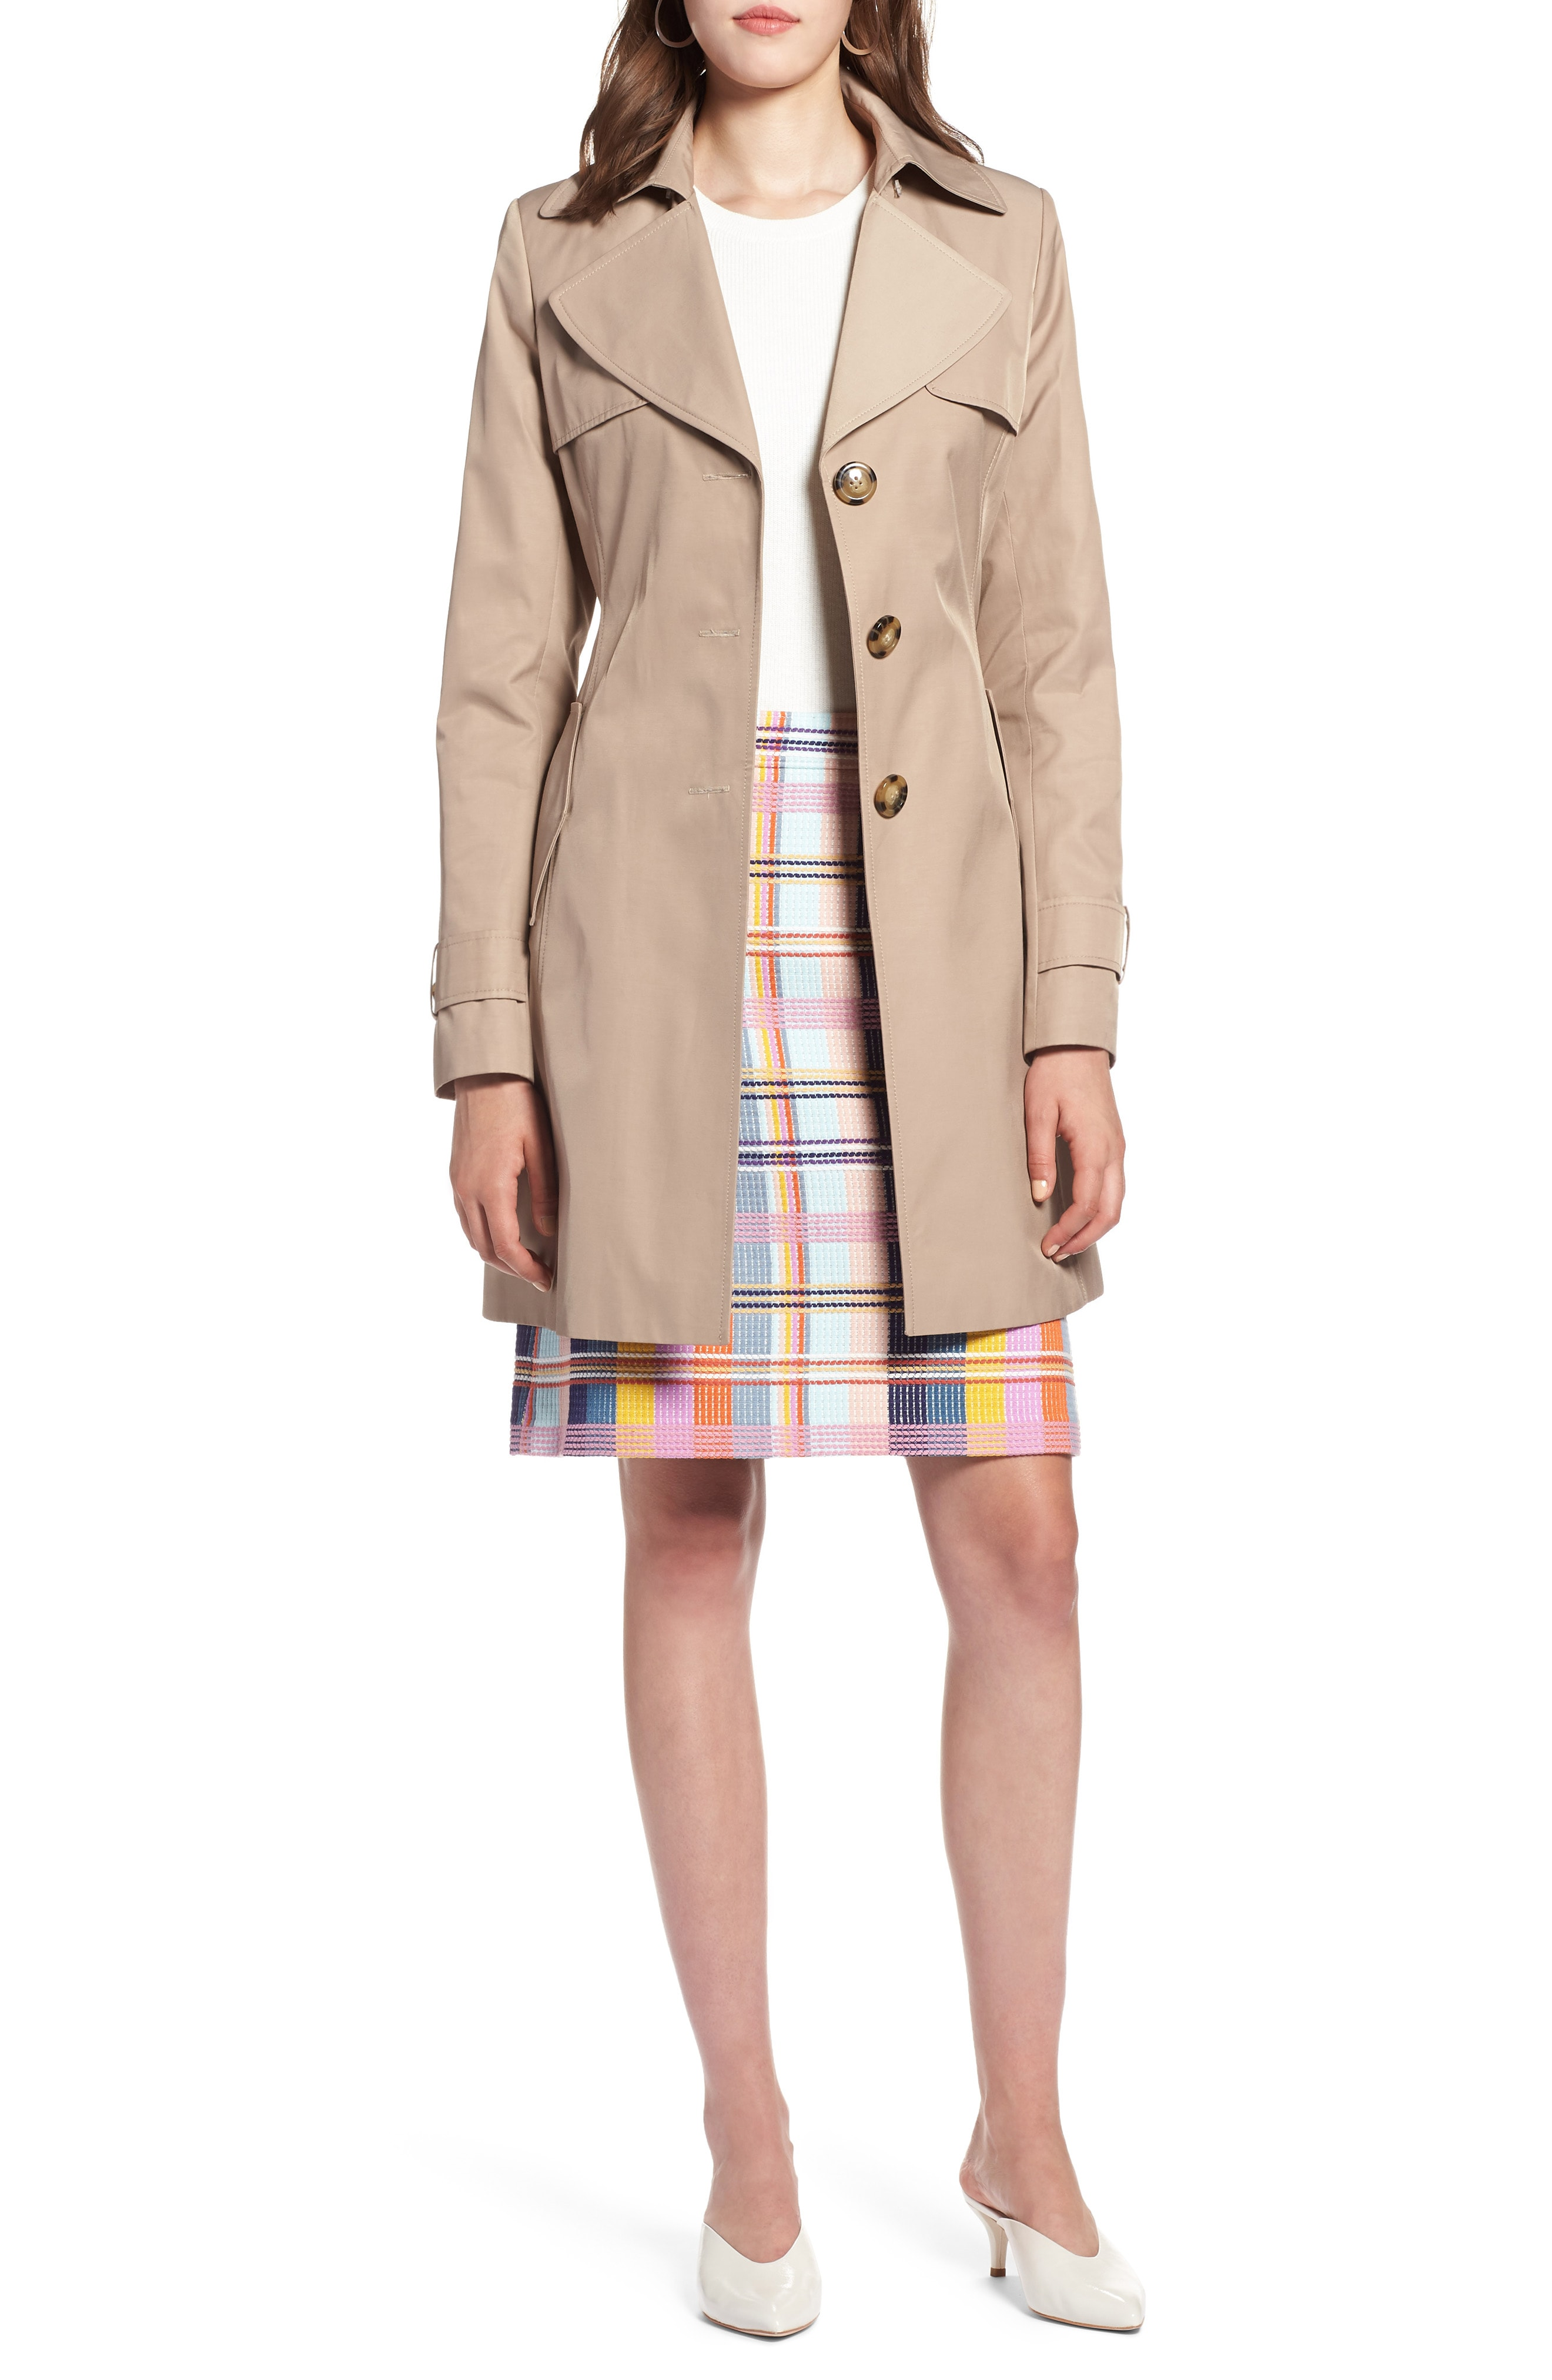 The evergreen fashion staple:   Beige coats